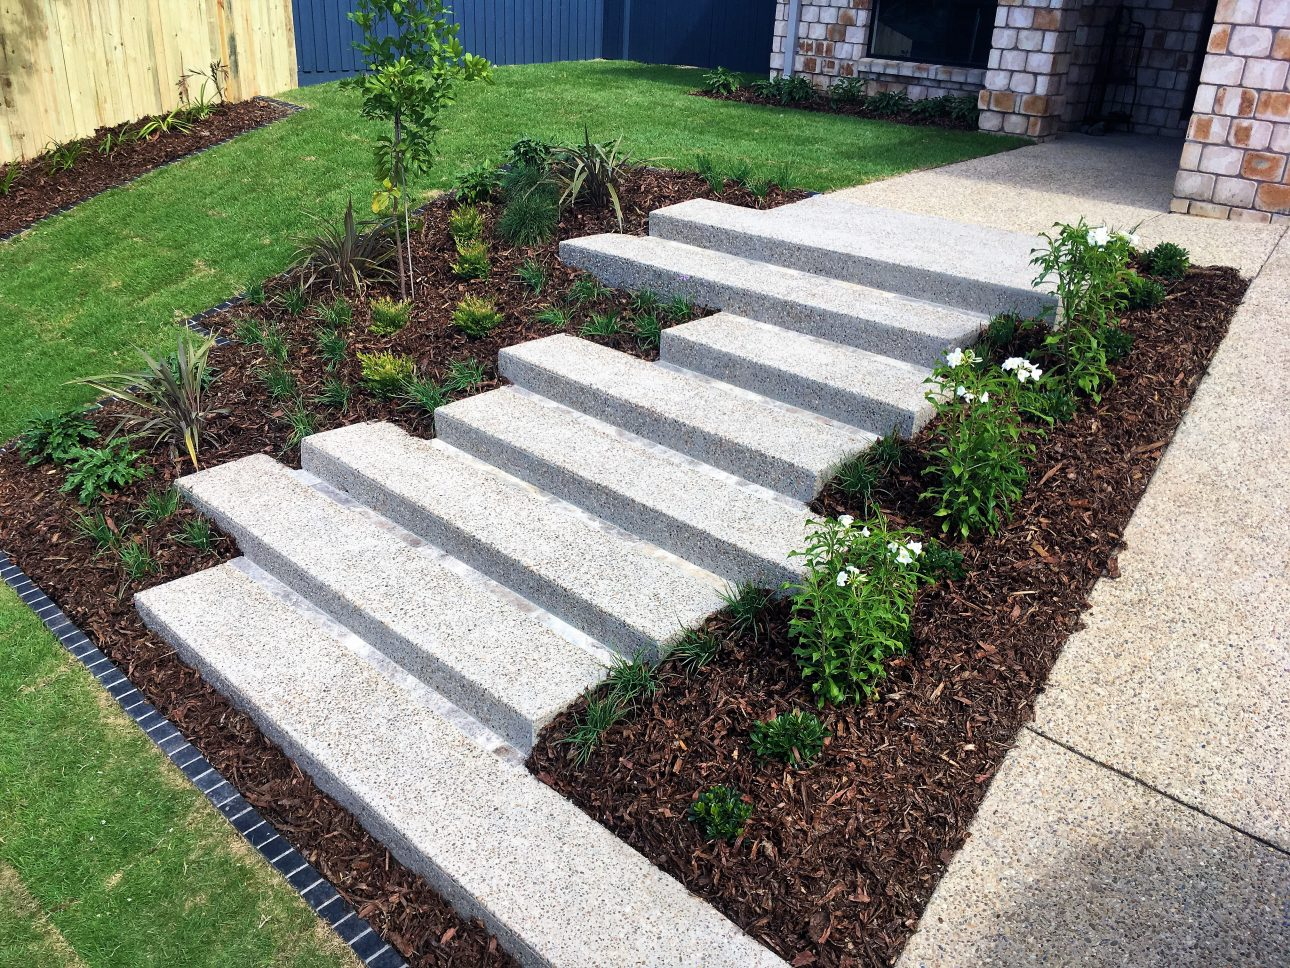 Concrete designs green envy designer landscapes for Landscape design courses brisbane